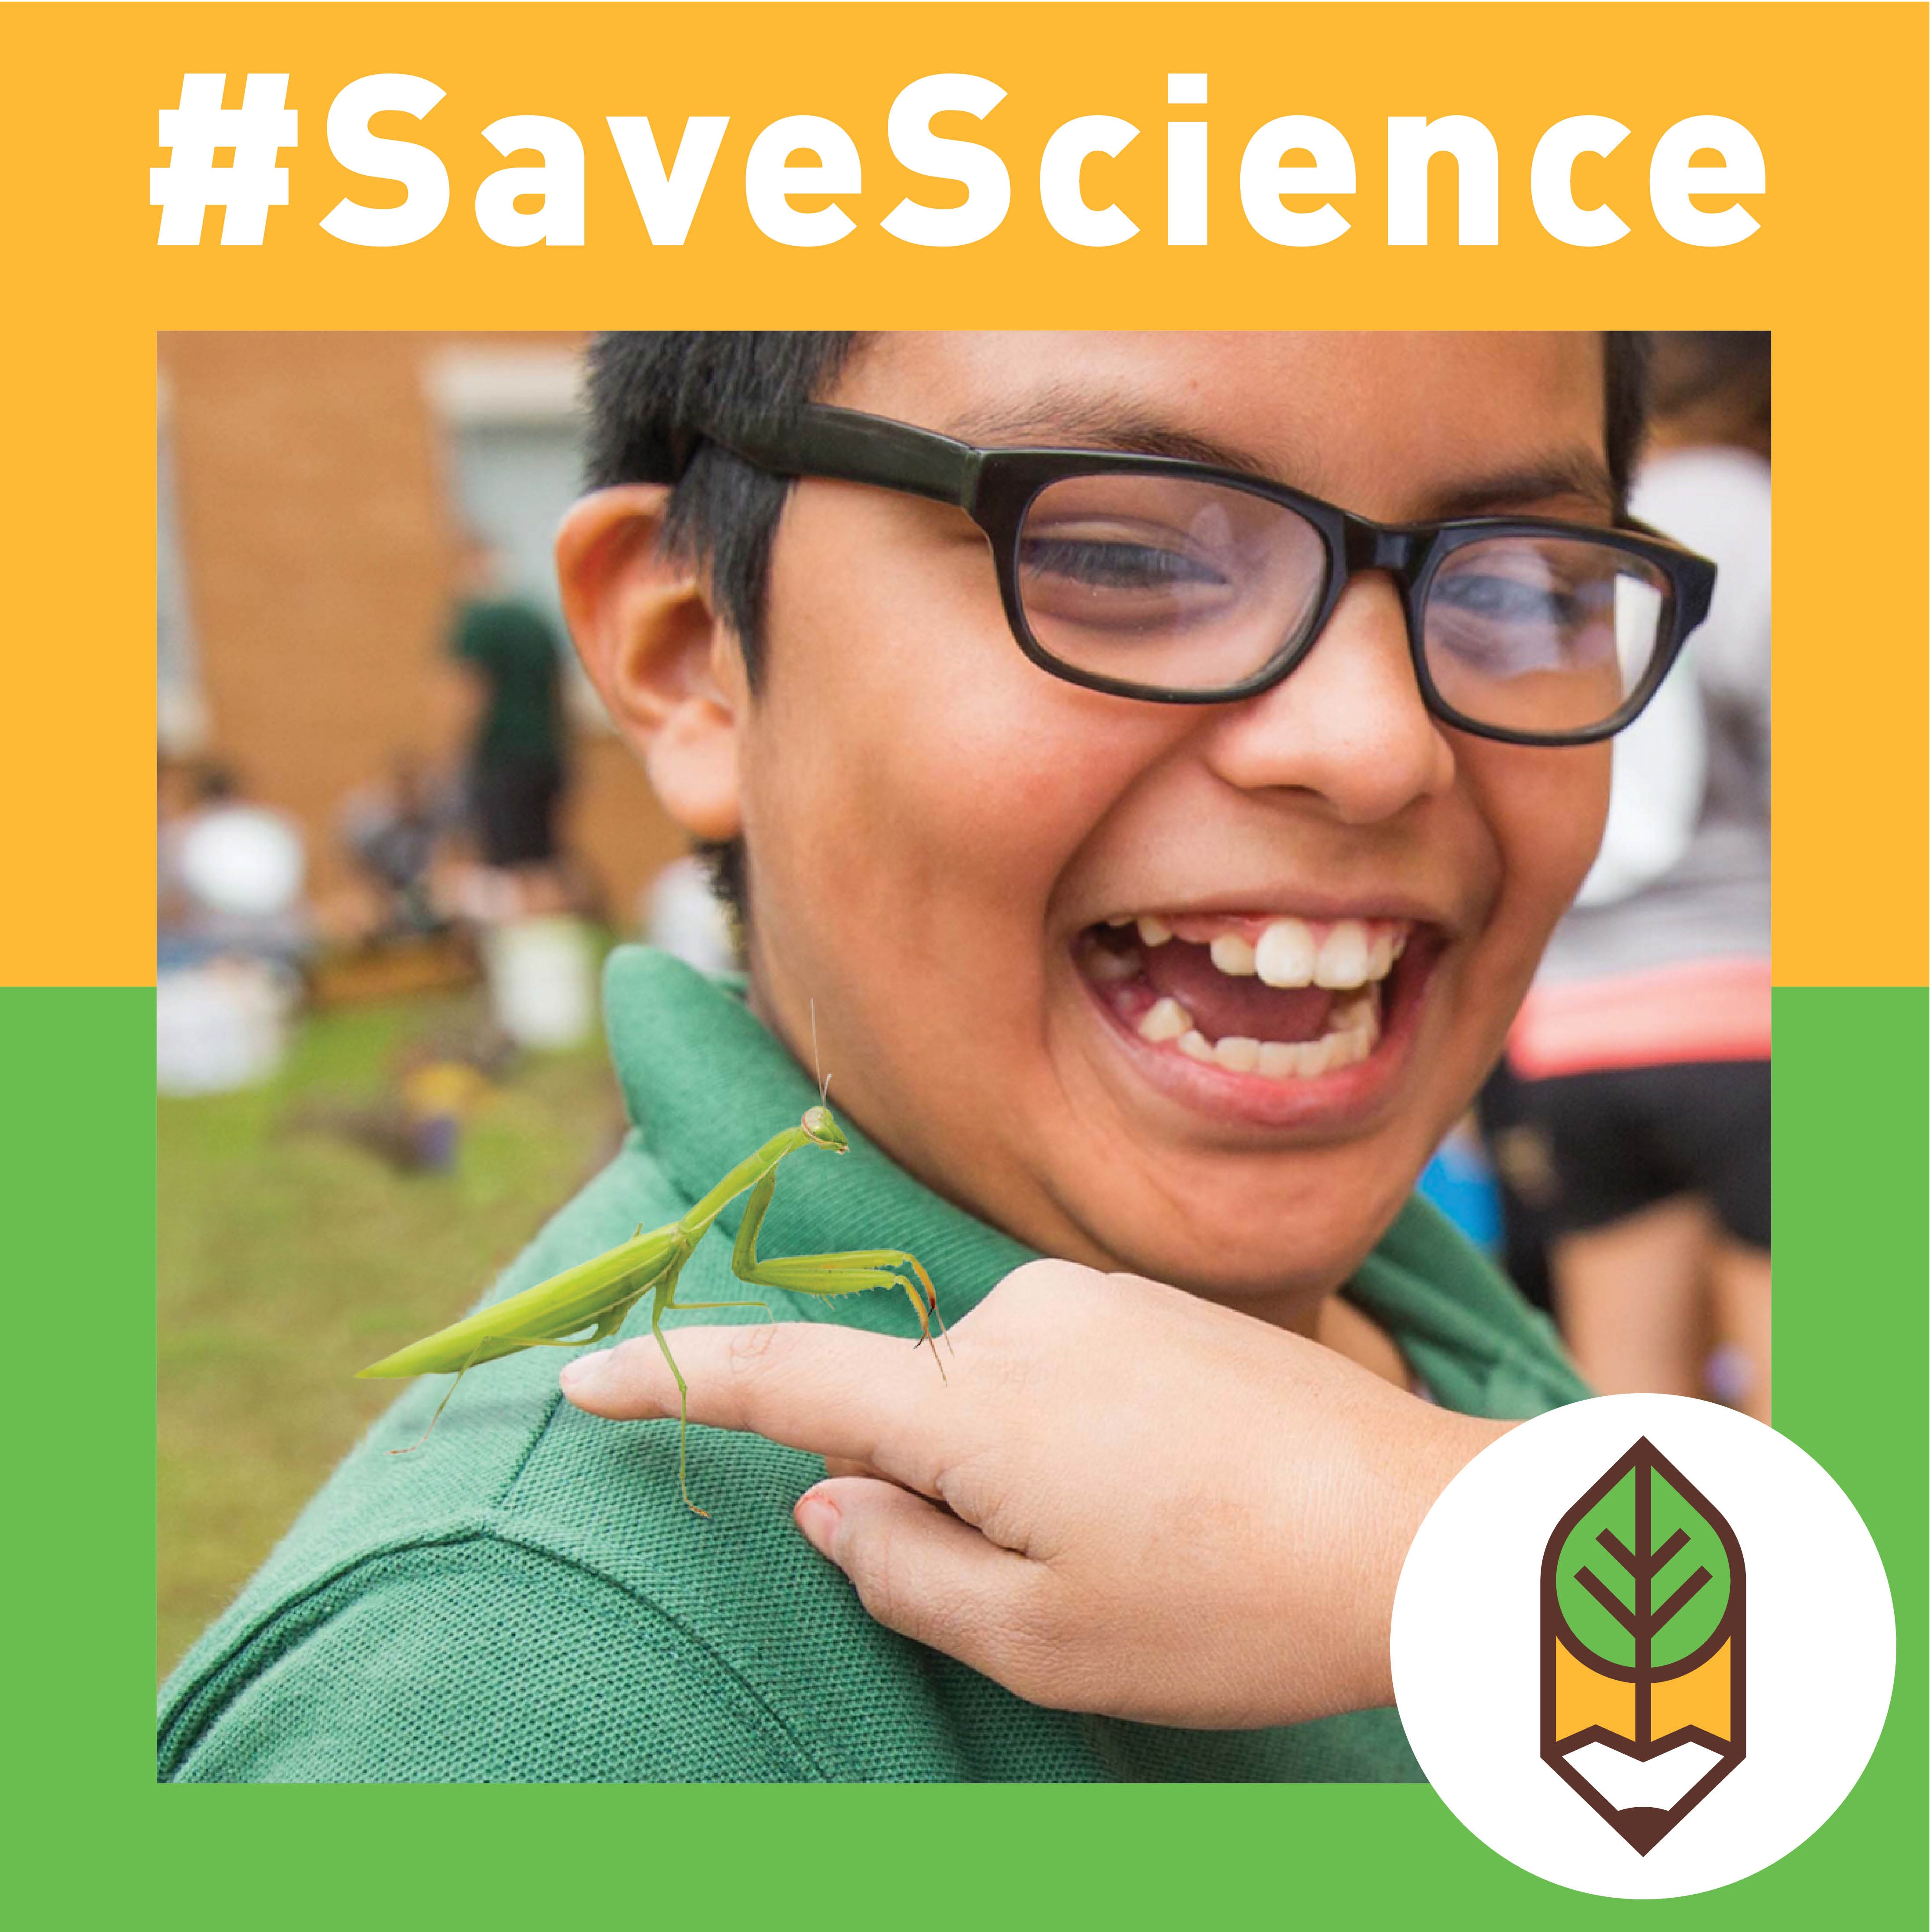 savescience_kids_13